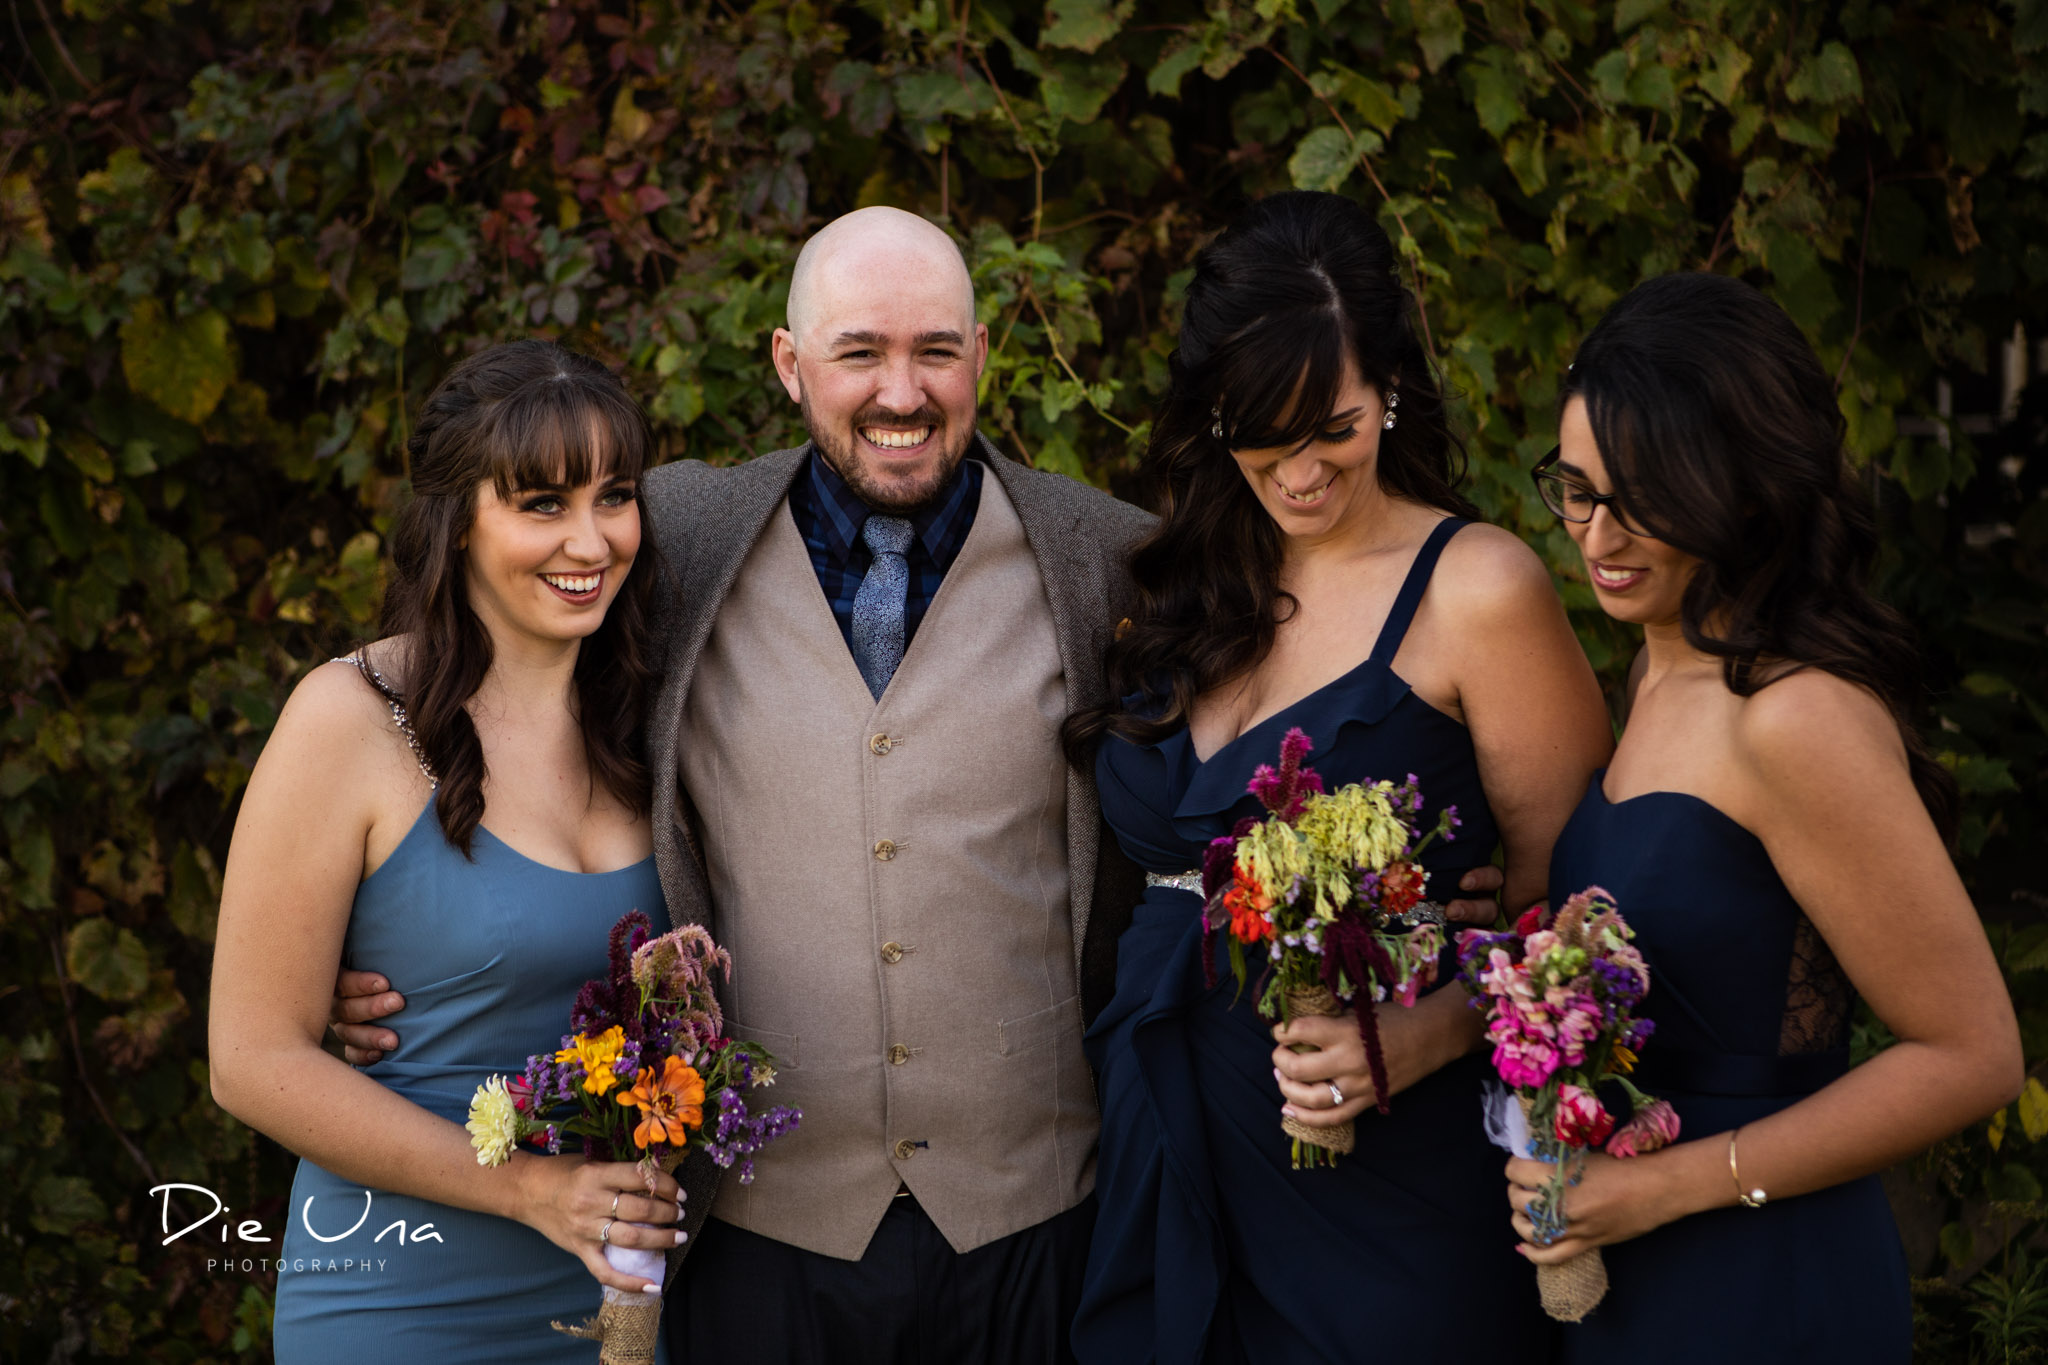 groom and brides sisters wedding photography.jpg